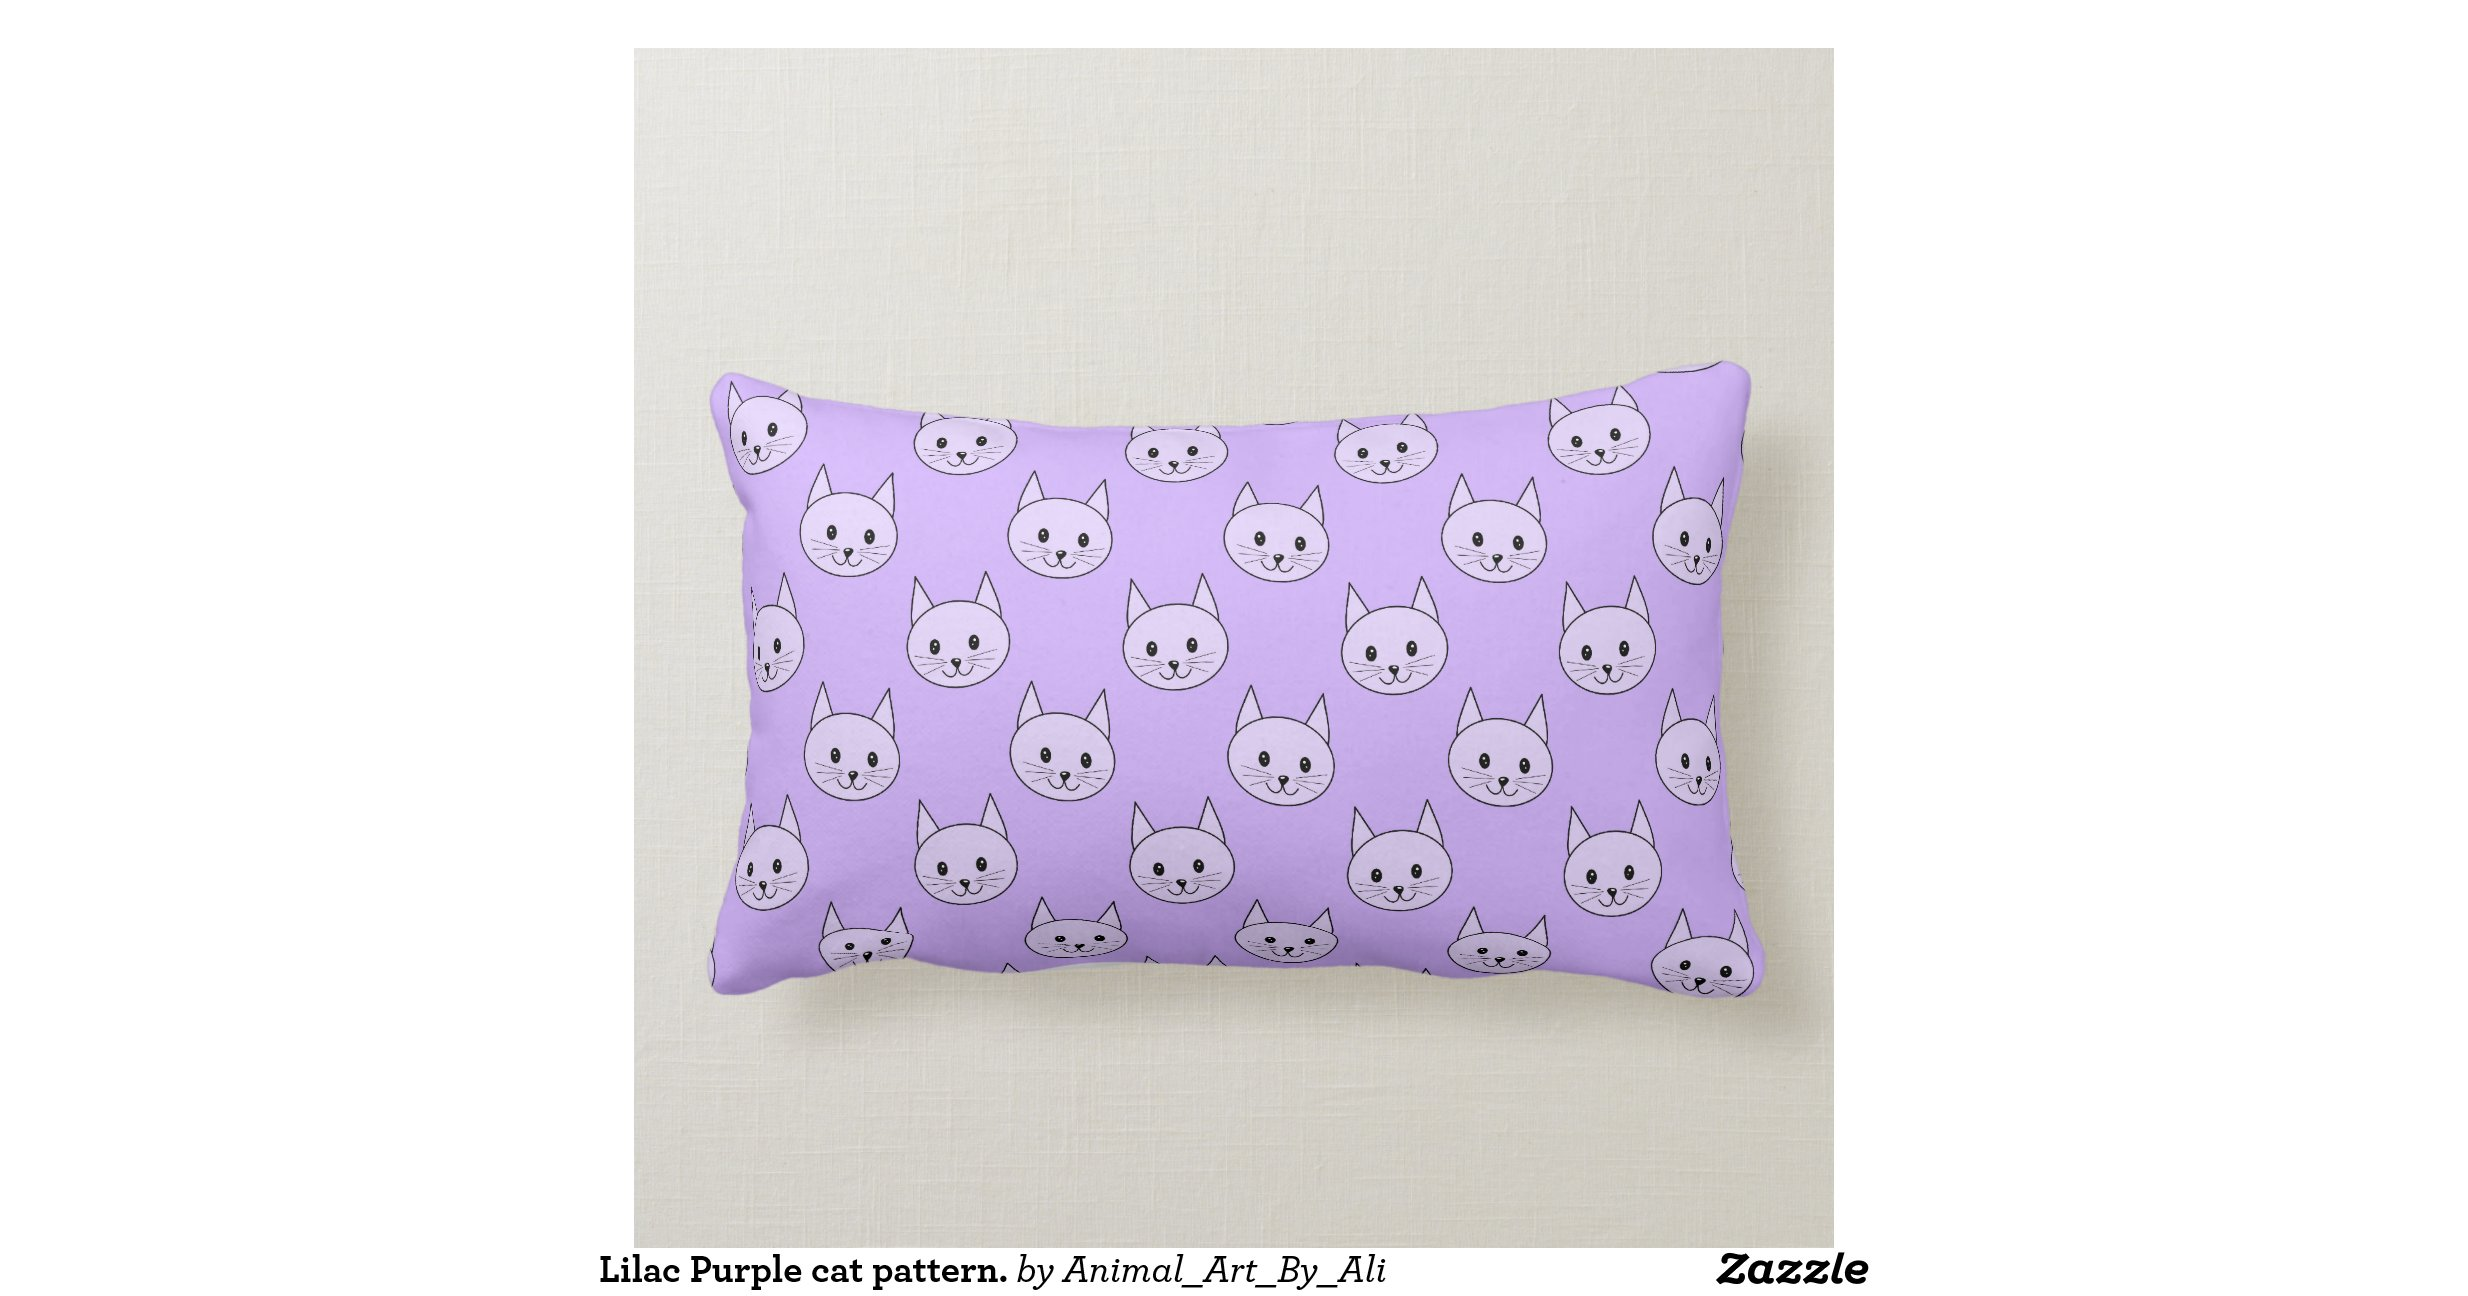 Throw Pillow Lilac : lilac_purple_cat_pattern_throw_pillows-r9af9de5221f34e47b1e07952163a3947_2zbjp_8byvr_1200.jpg ...